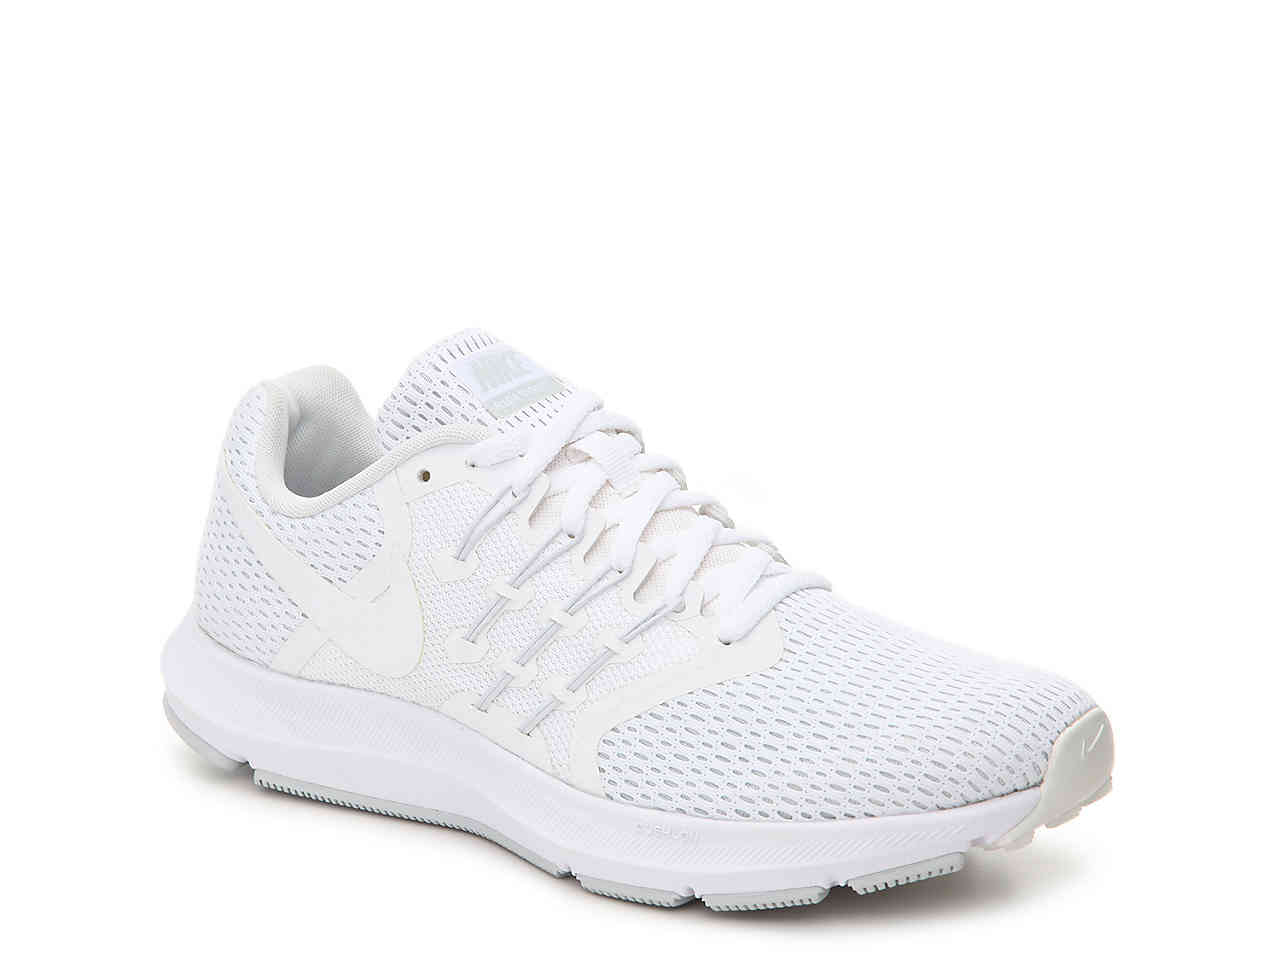 47449facc9c99 White Nike Running Shoes   Buy Nike Sneakers   Shoes